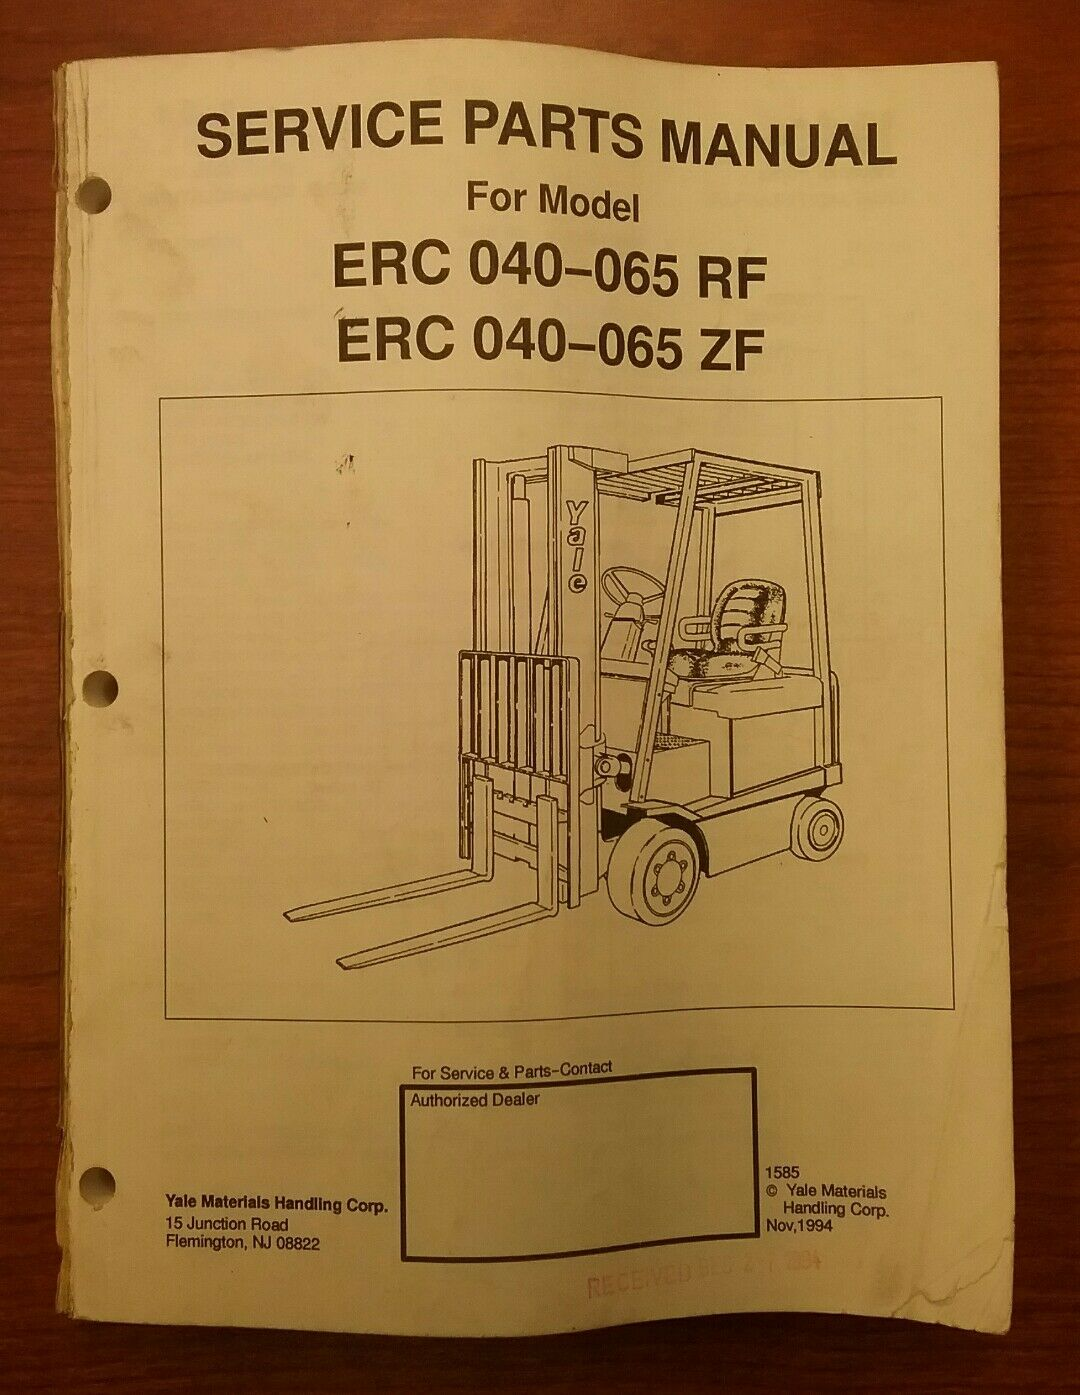 Parts Yale Diagram Fork Lift Gtp060 Explained Wiring Diagrams Glc030 Service Manual Erc 040 065 Rf Zf 1585 35 60 Picclick